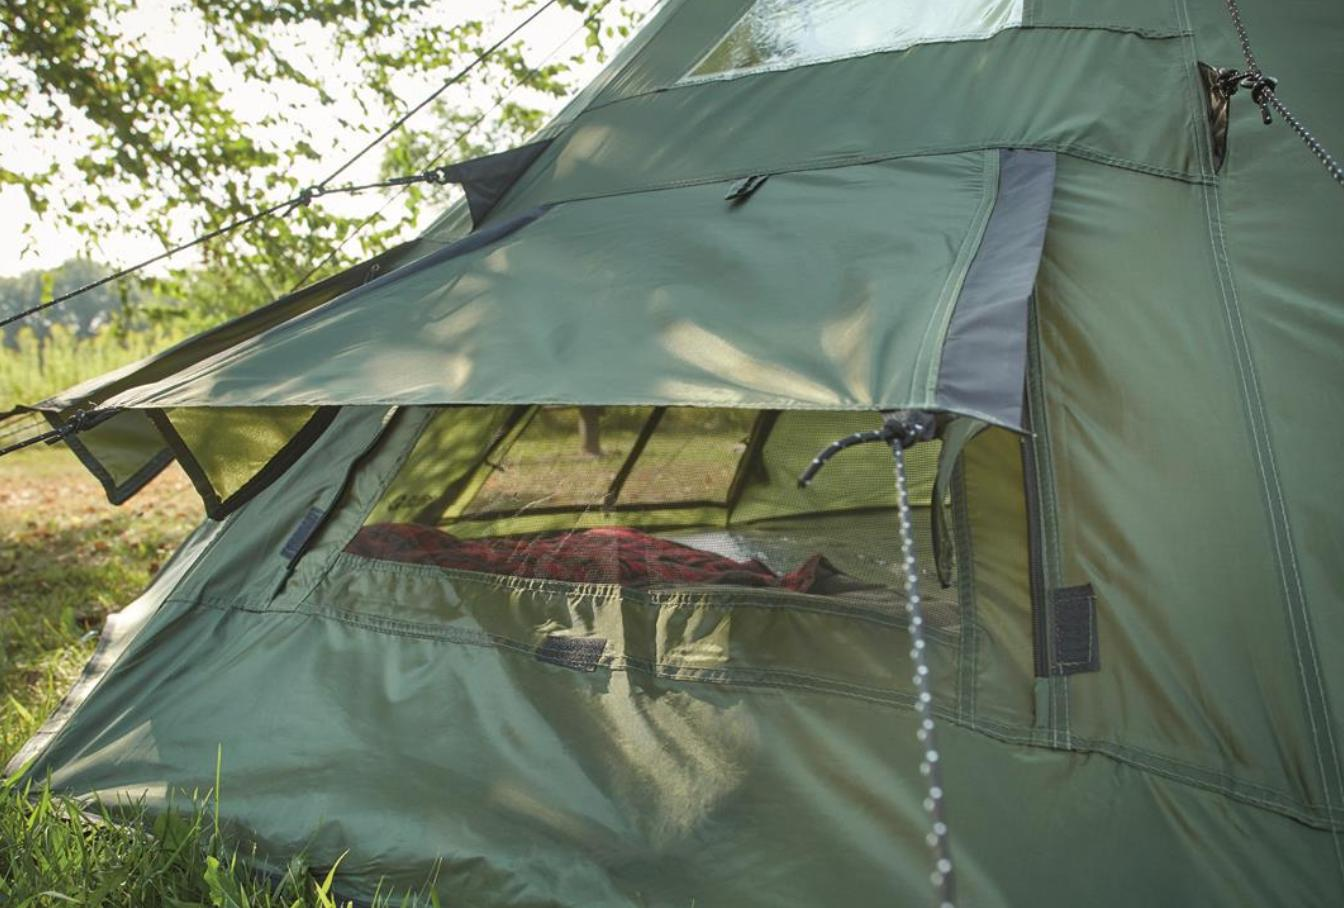 Family Teepee Sleeps 6 People Green Camp Shelter